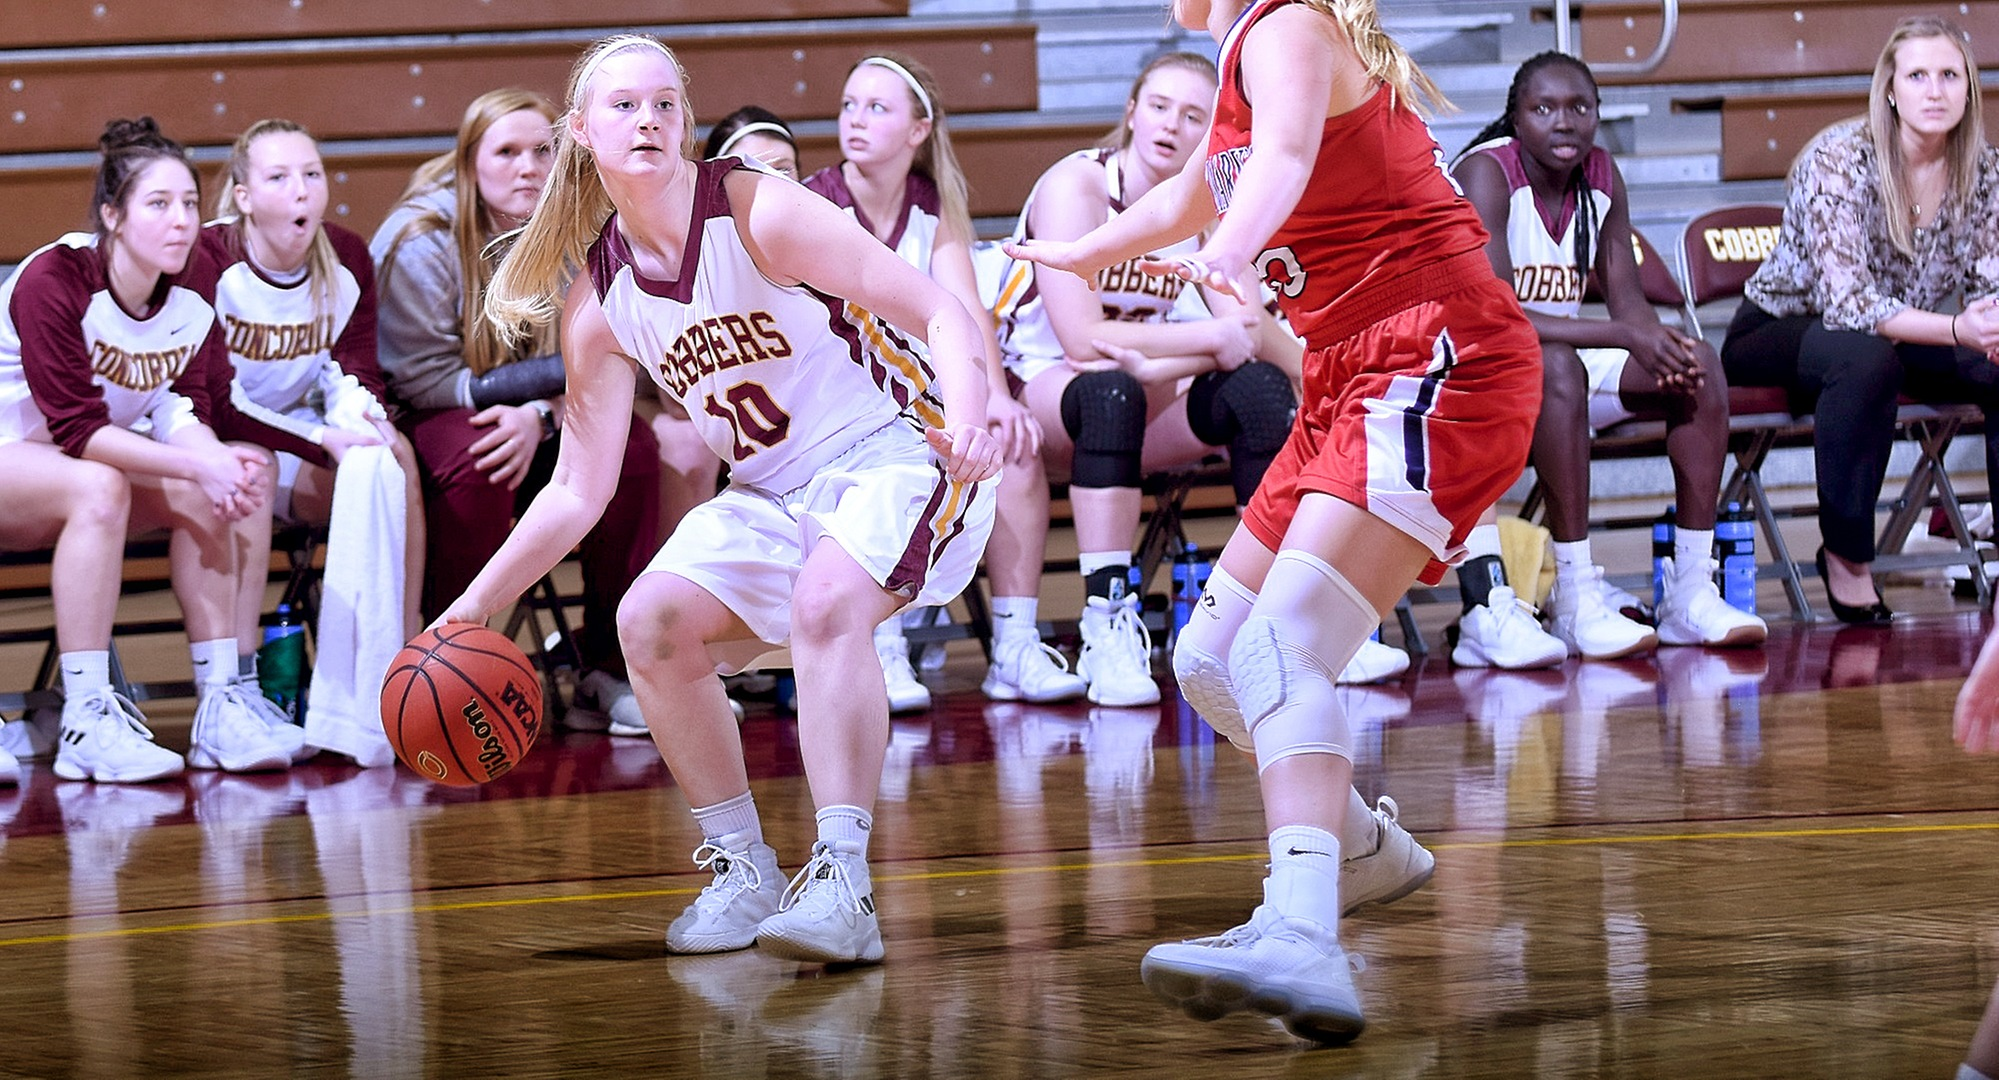 Sophomore Elizabeth Birkemeyer  dribbles the ball towards the basket in the second half of the Cobbers' game with St. Mary's. She finished with career-high totals in points, rebounds and assists.